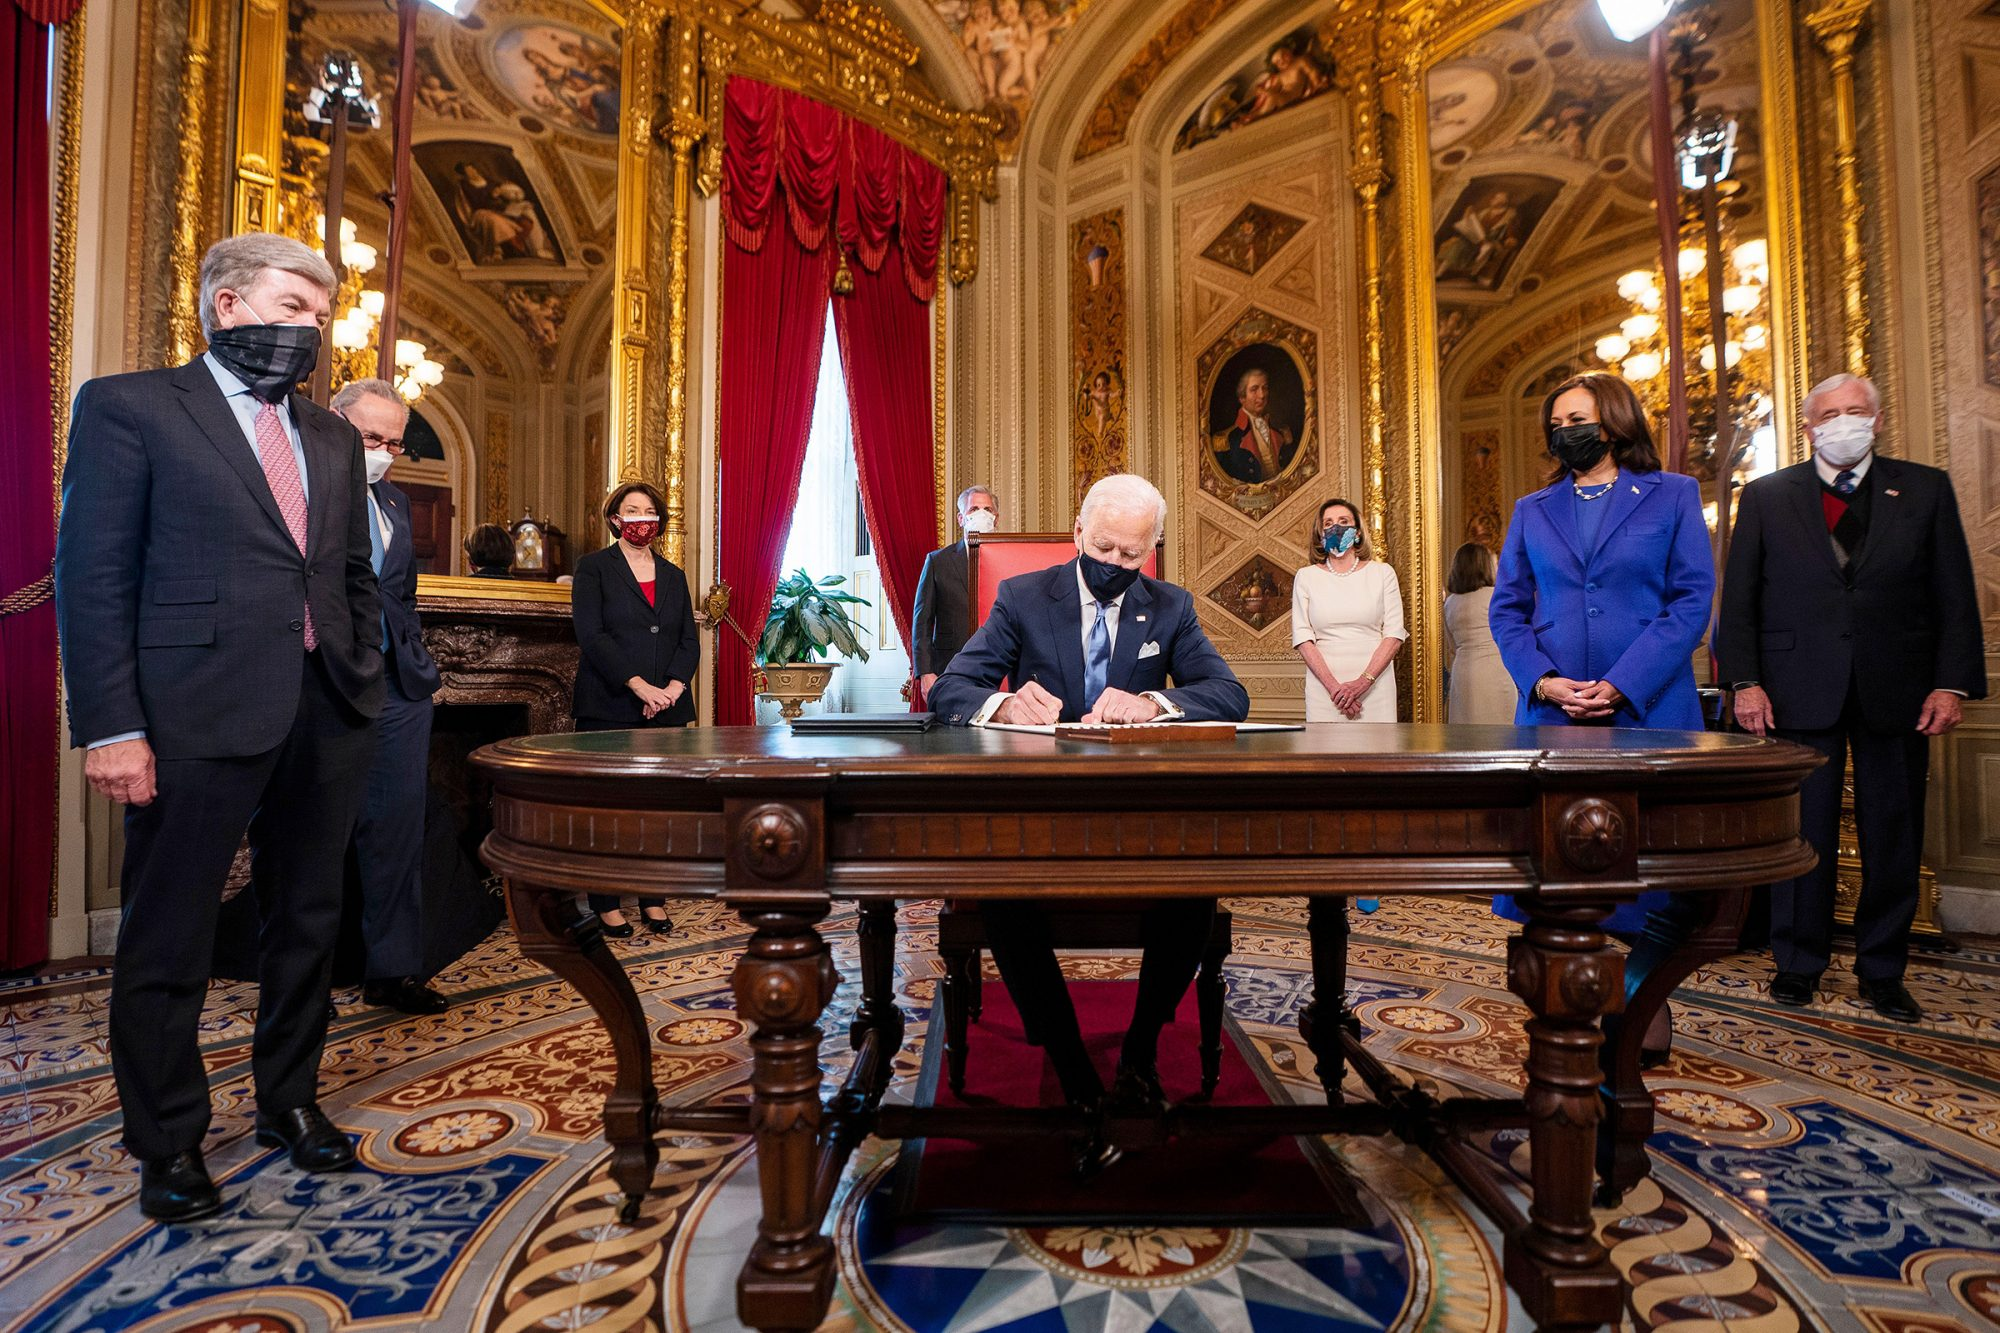 President Joe Biden signs three documents including an inauguration declaration, cabinet nominations and sub-cabinet nominations in the President's Room at the US Capitol after the inauguration ceremony, at the U.S. Capitol in Washington